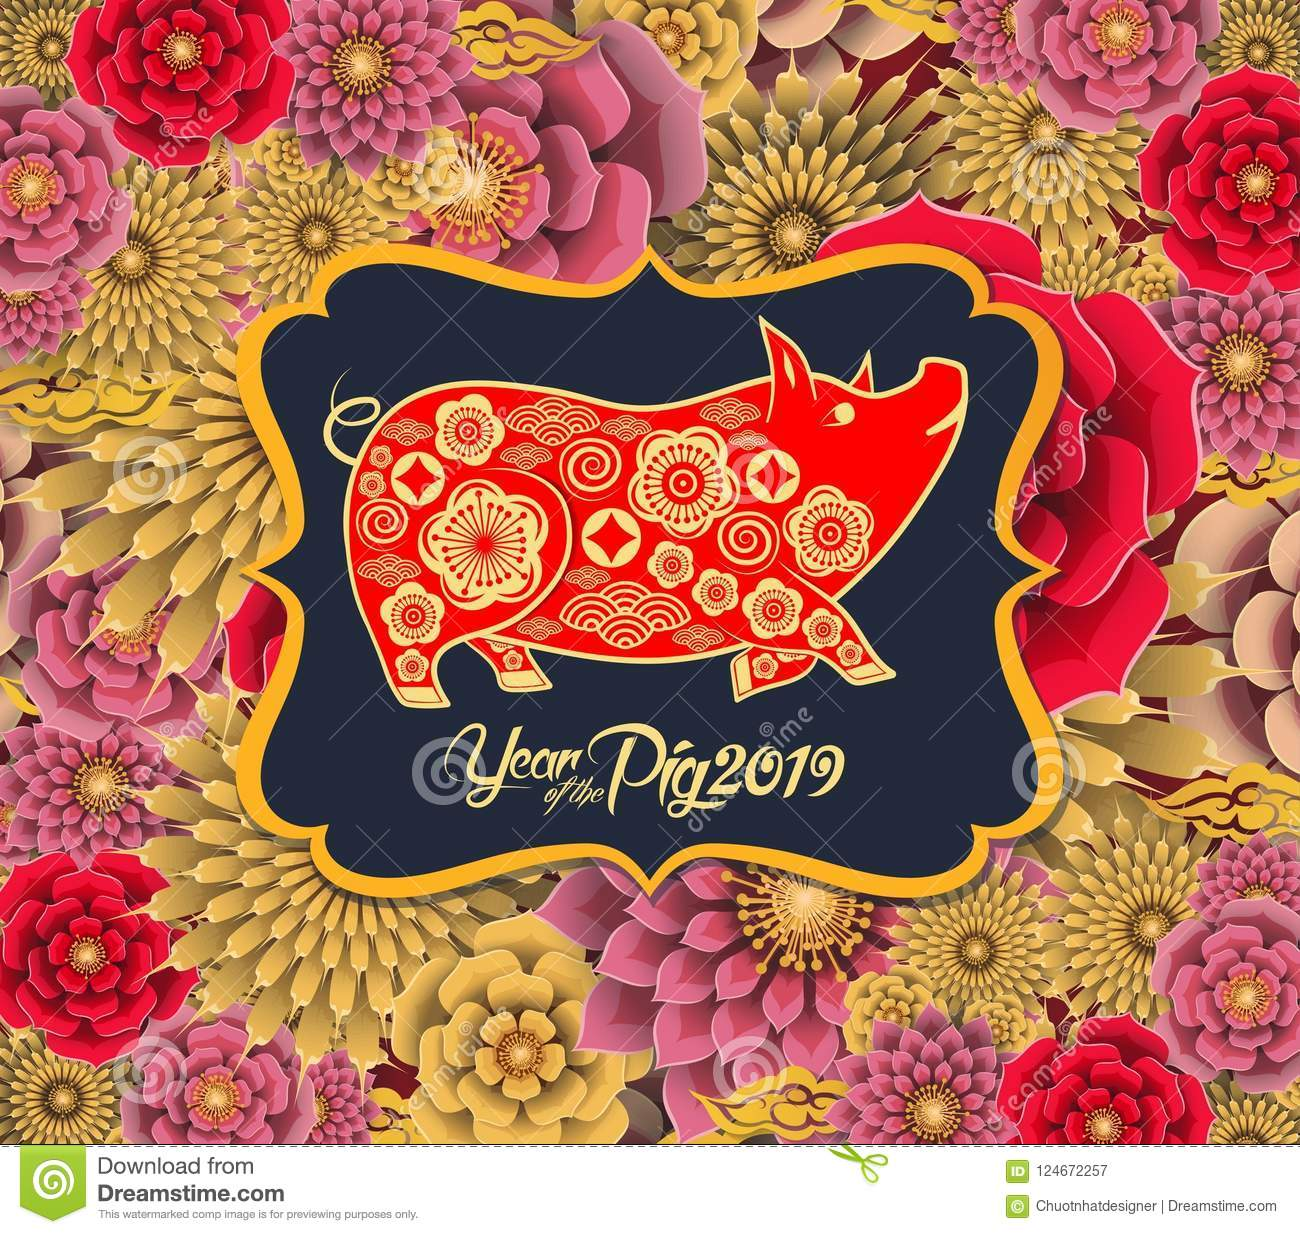 Happy chinese new year 2019 Zodiac sign with gold paper cut art and craft style on color Background. Chinese characters mean Happy